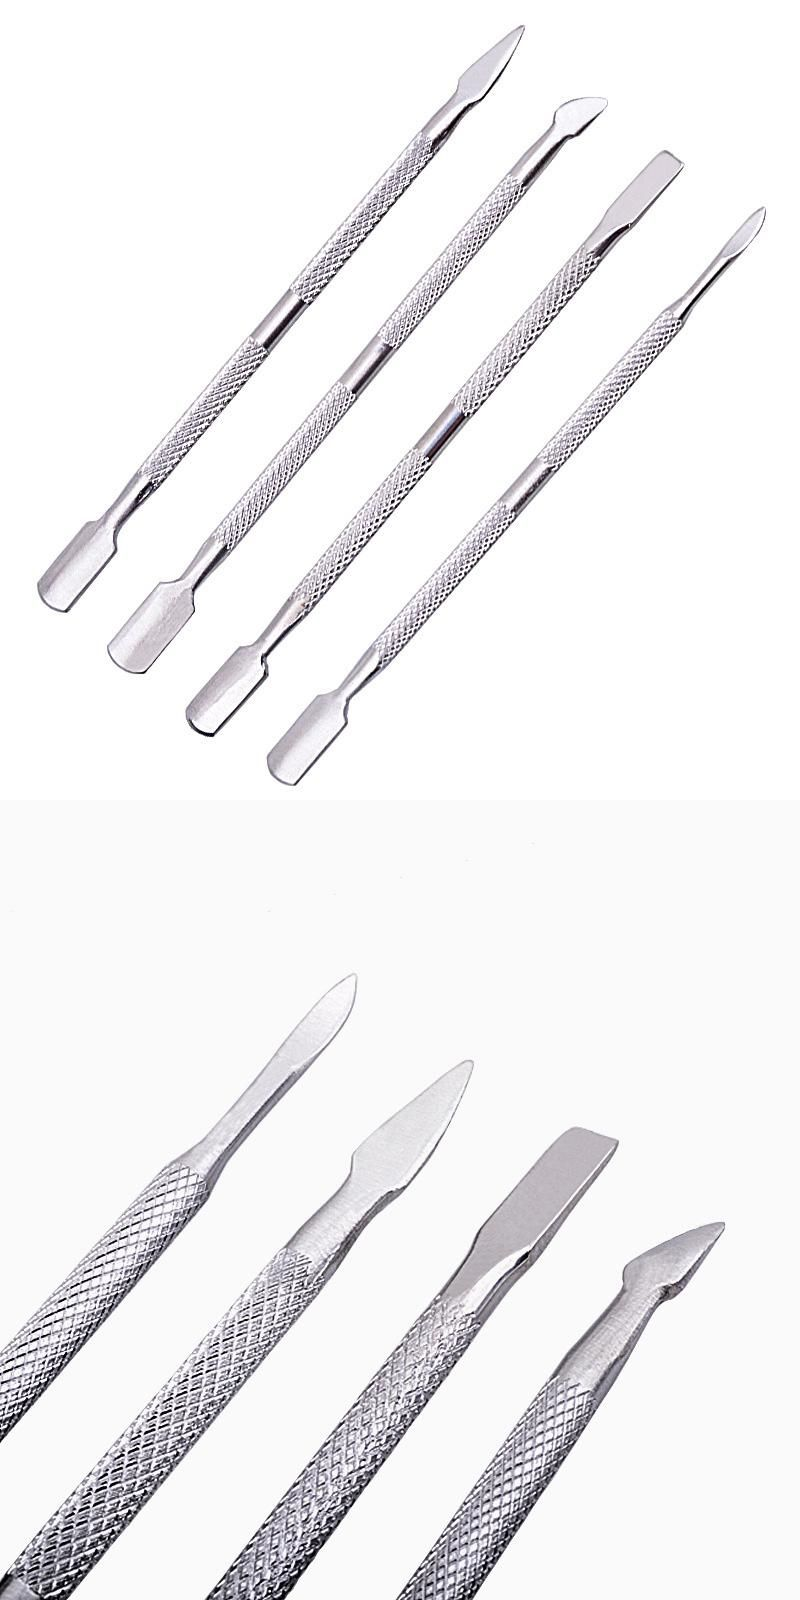 Visit to Buy] 4Pcs Stainless Steel Nail Art Cuticle Spoon Pusher